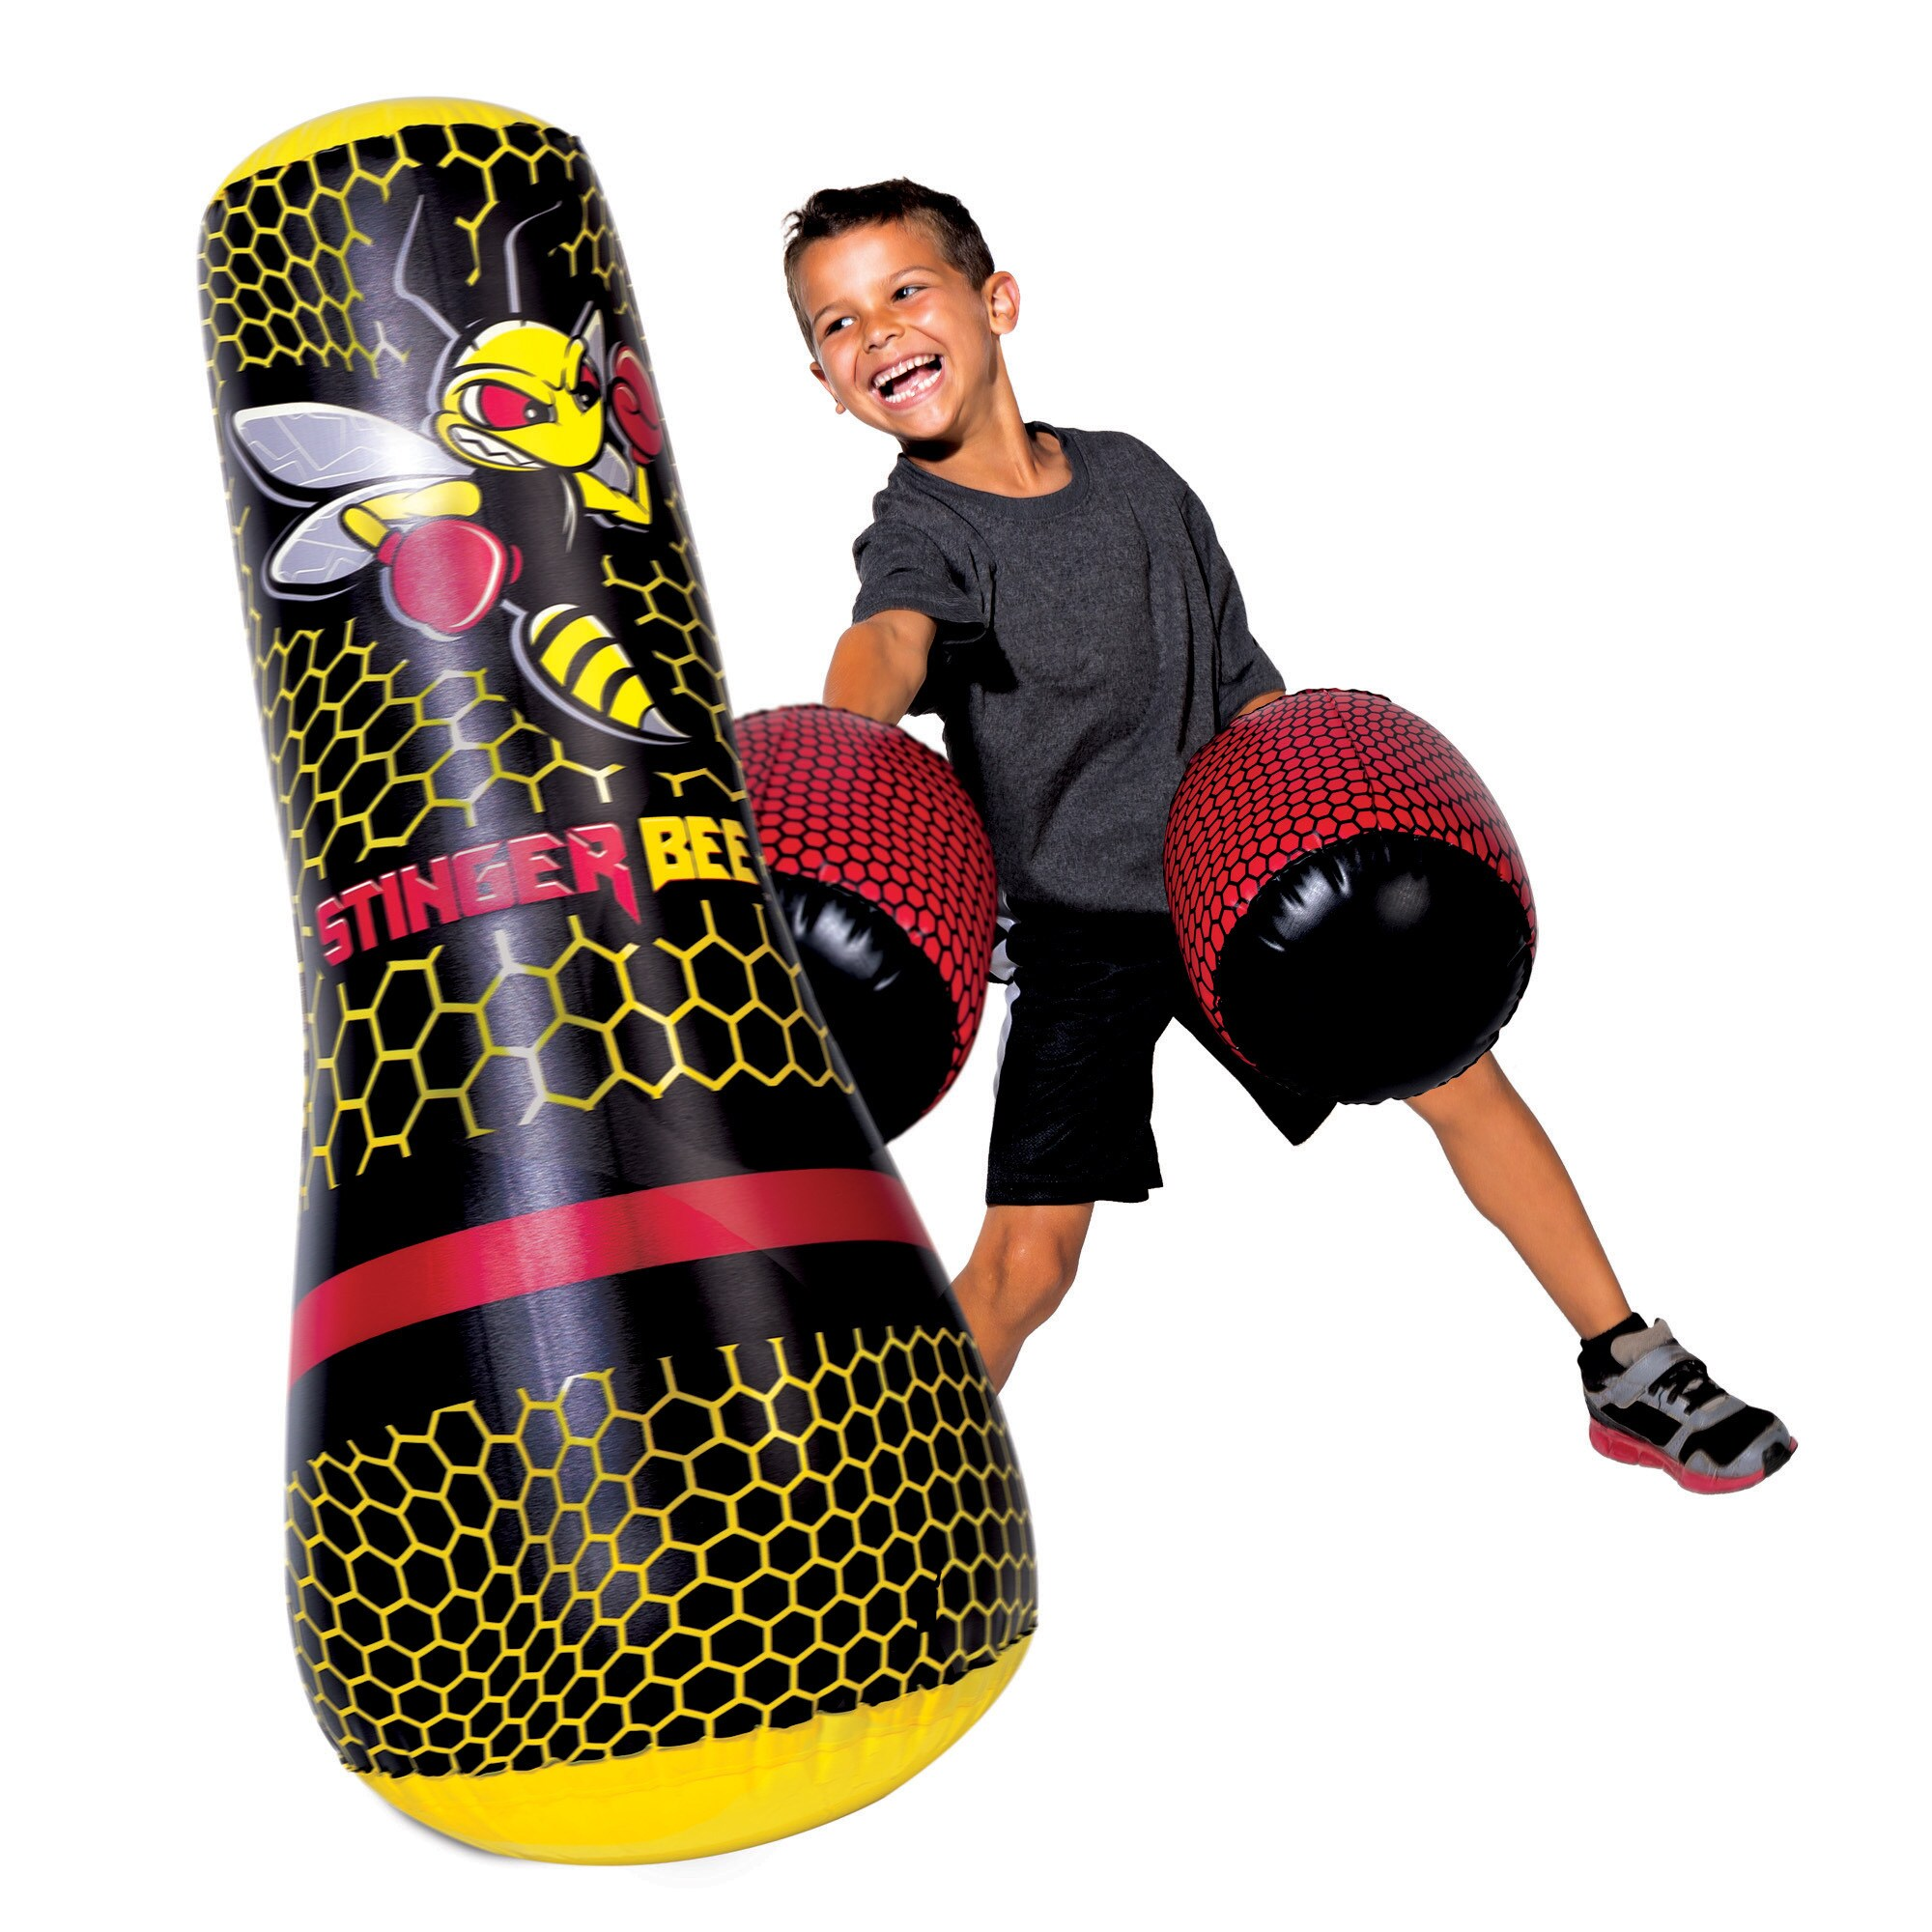 Franklin Sports Stringer Bee Multi-color Punching Bag and...